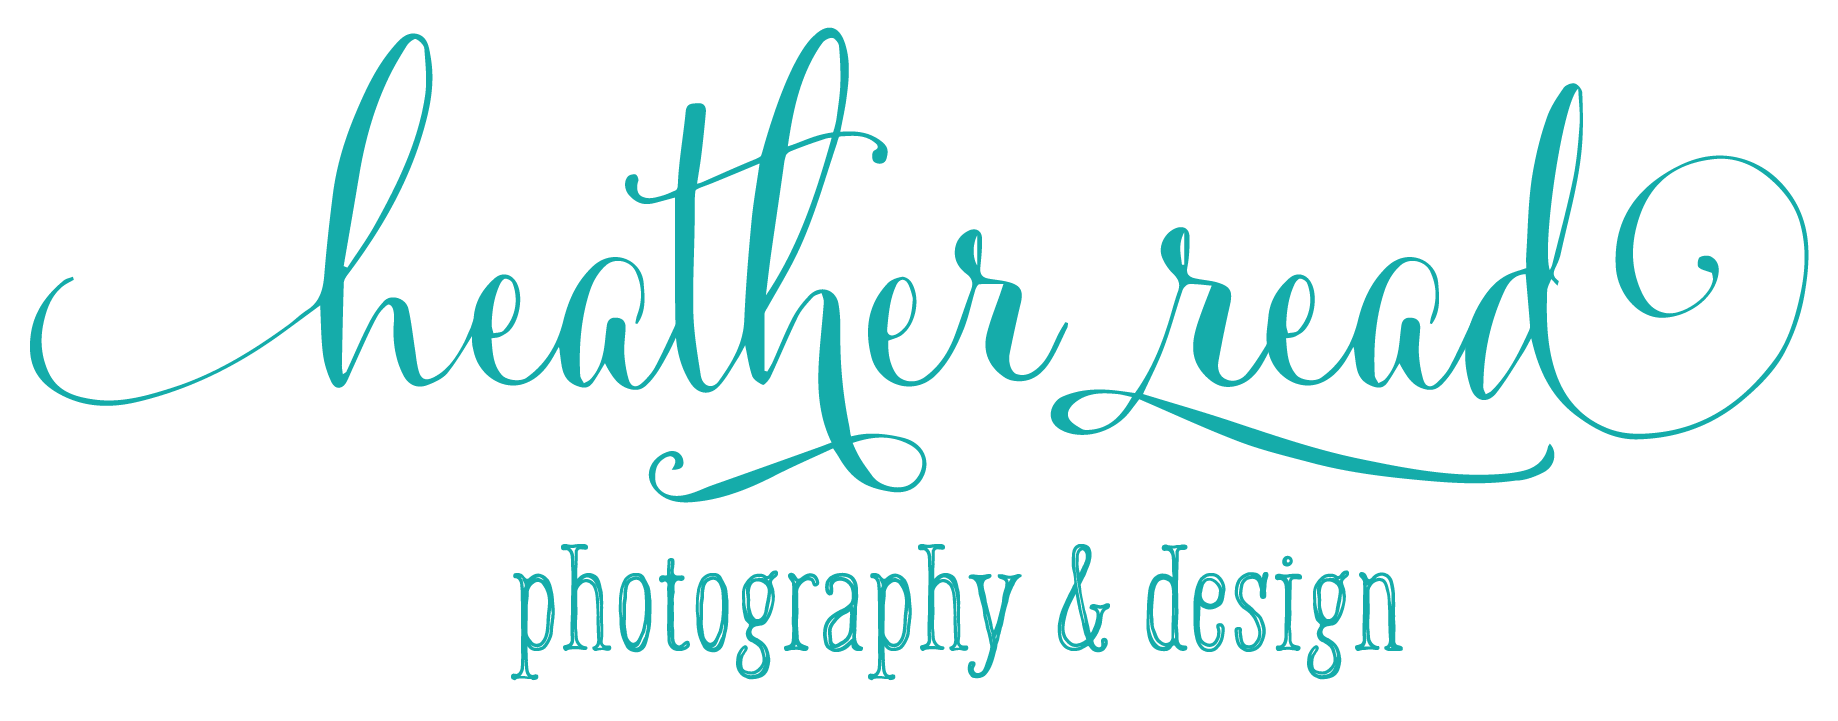 Heather Read Photography & Design